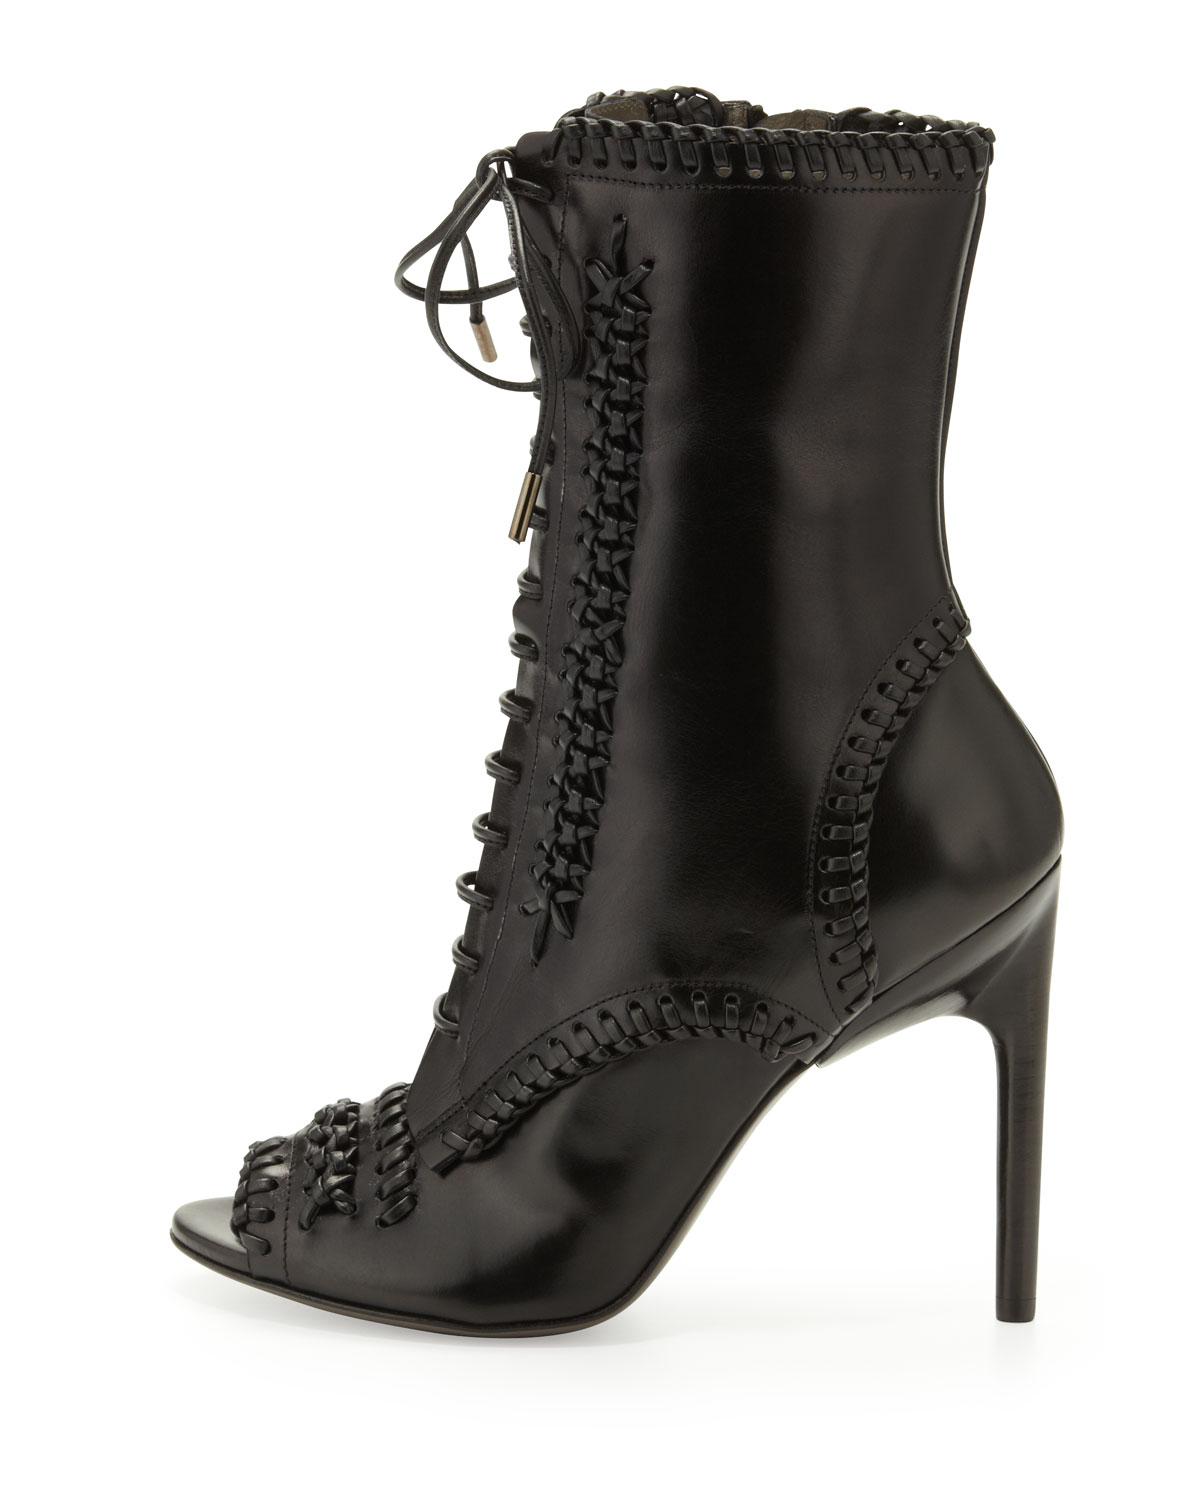 Jason Wu Laceup Whipstitch Boot In Black Lyst